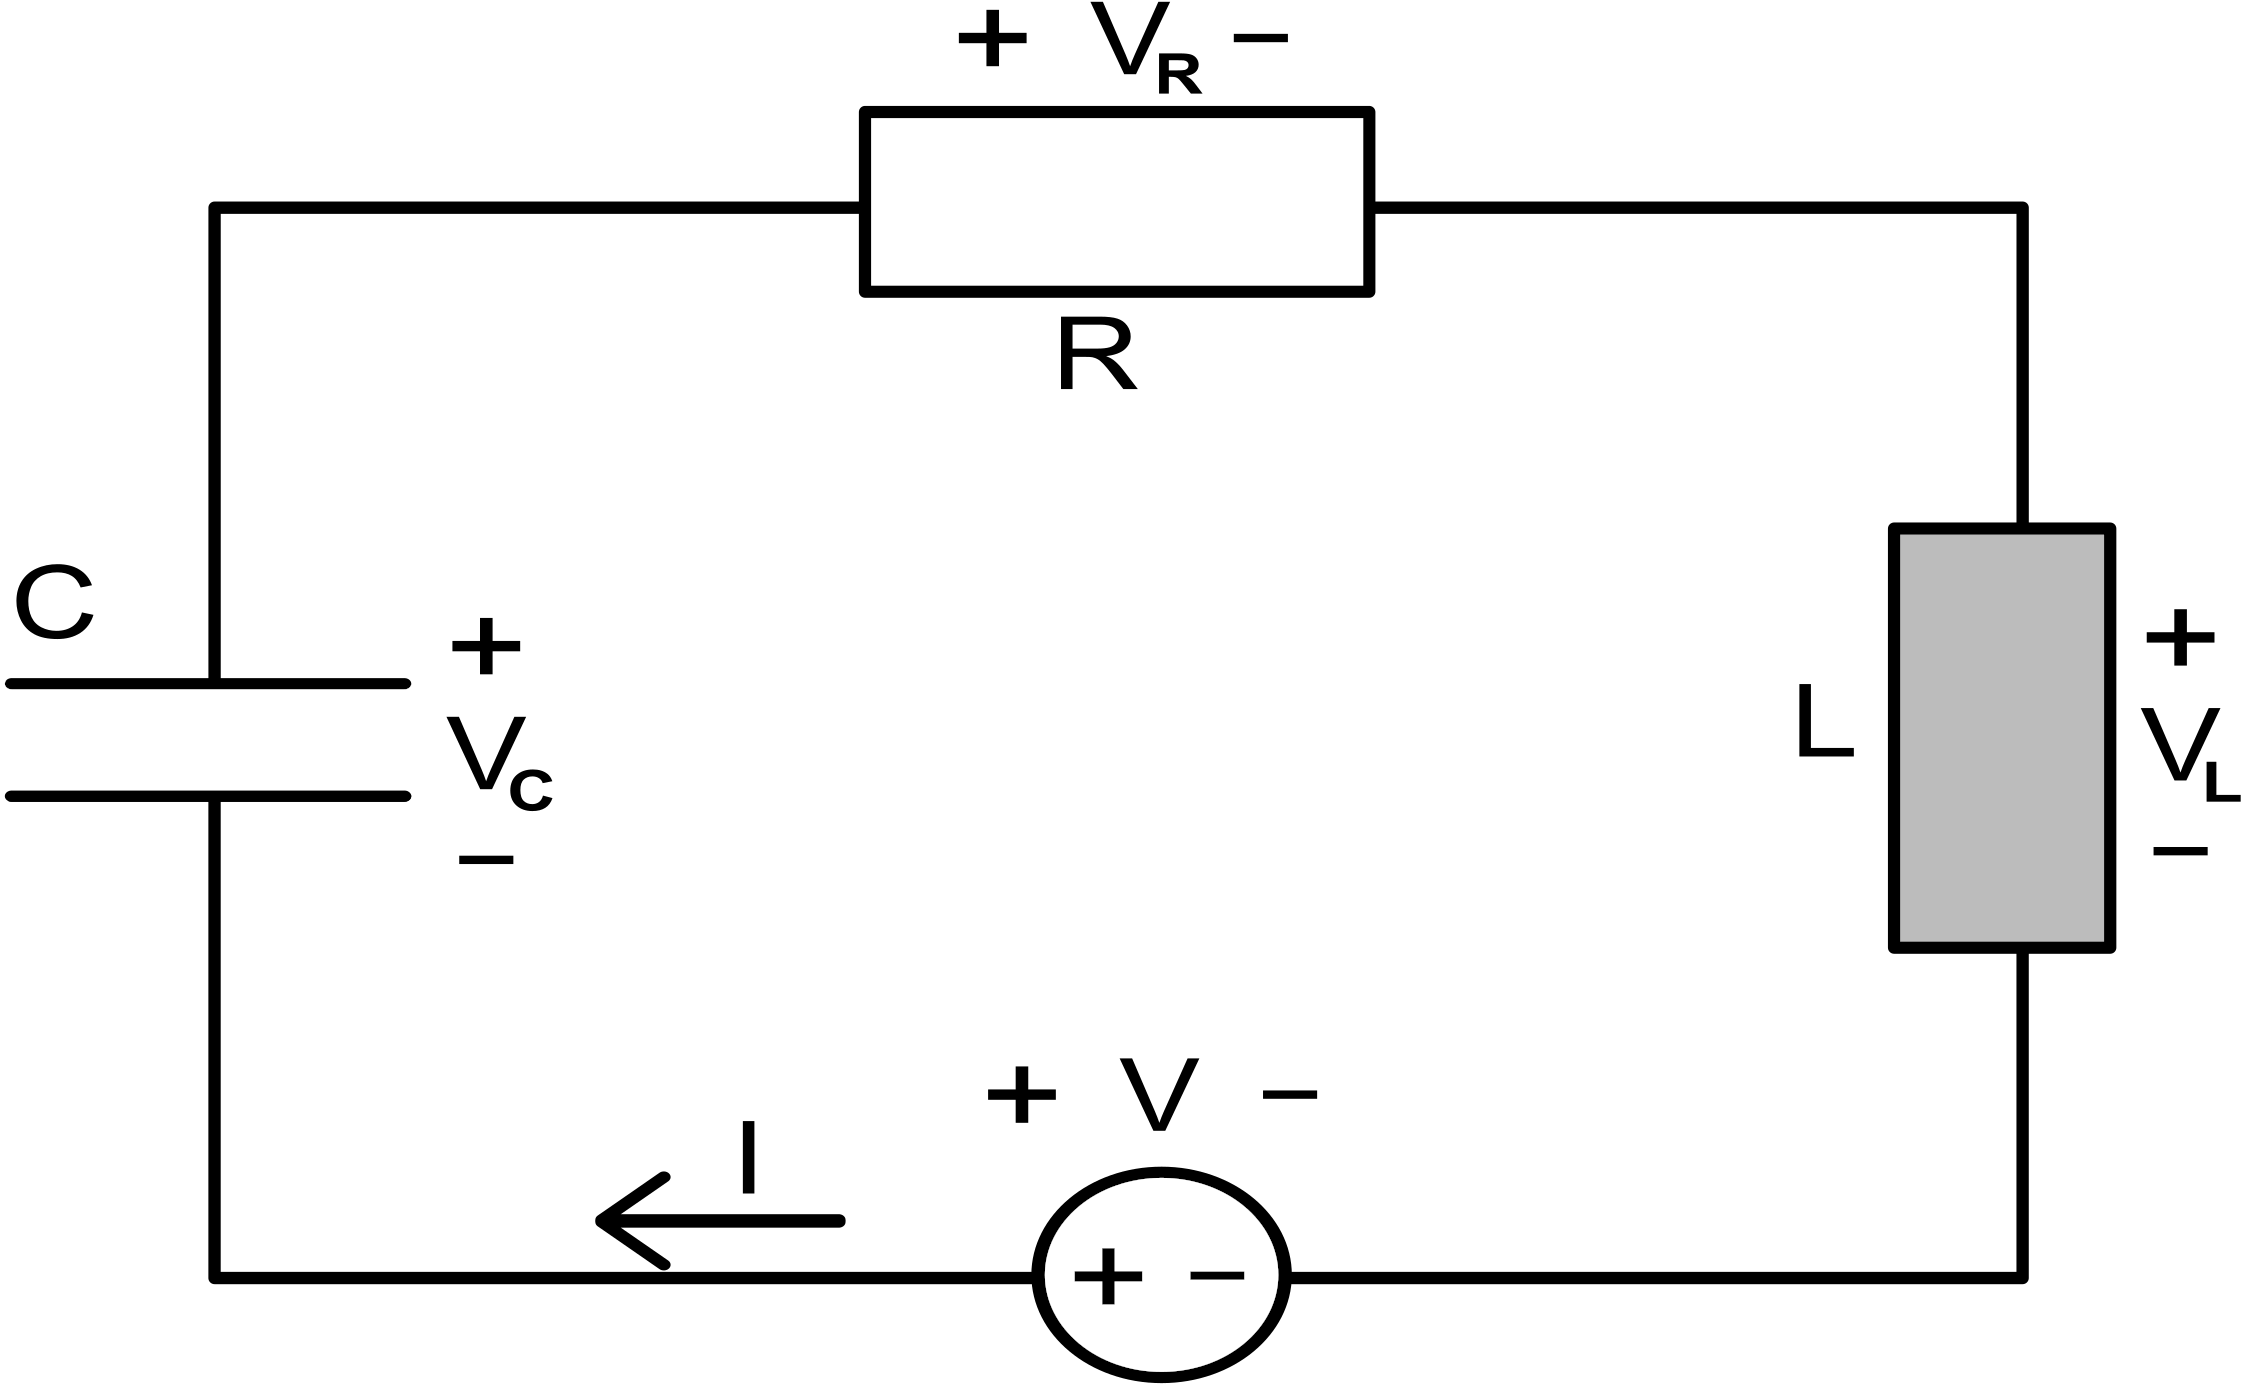 Series Parallel Circuit Coloring Pages